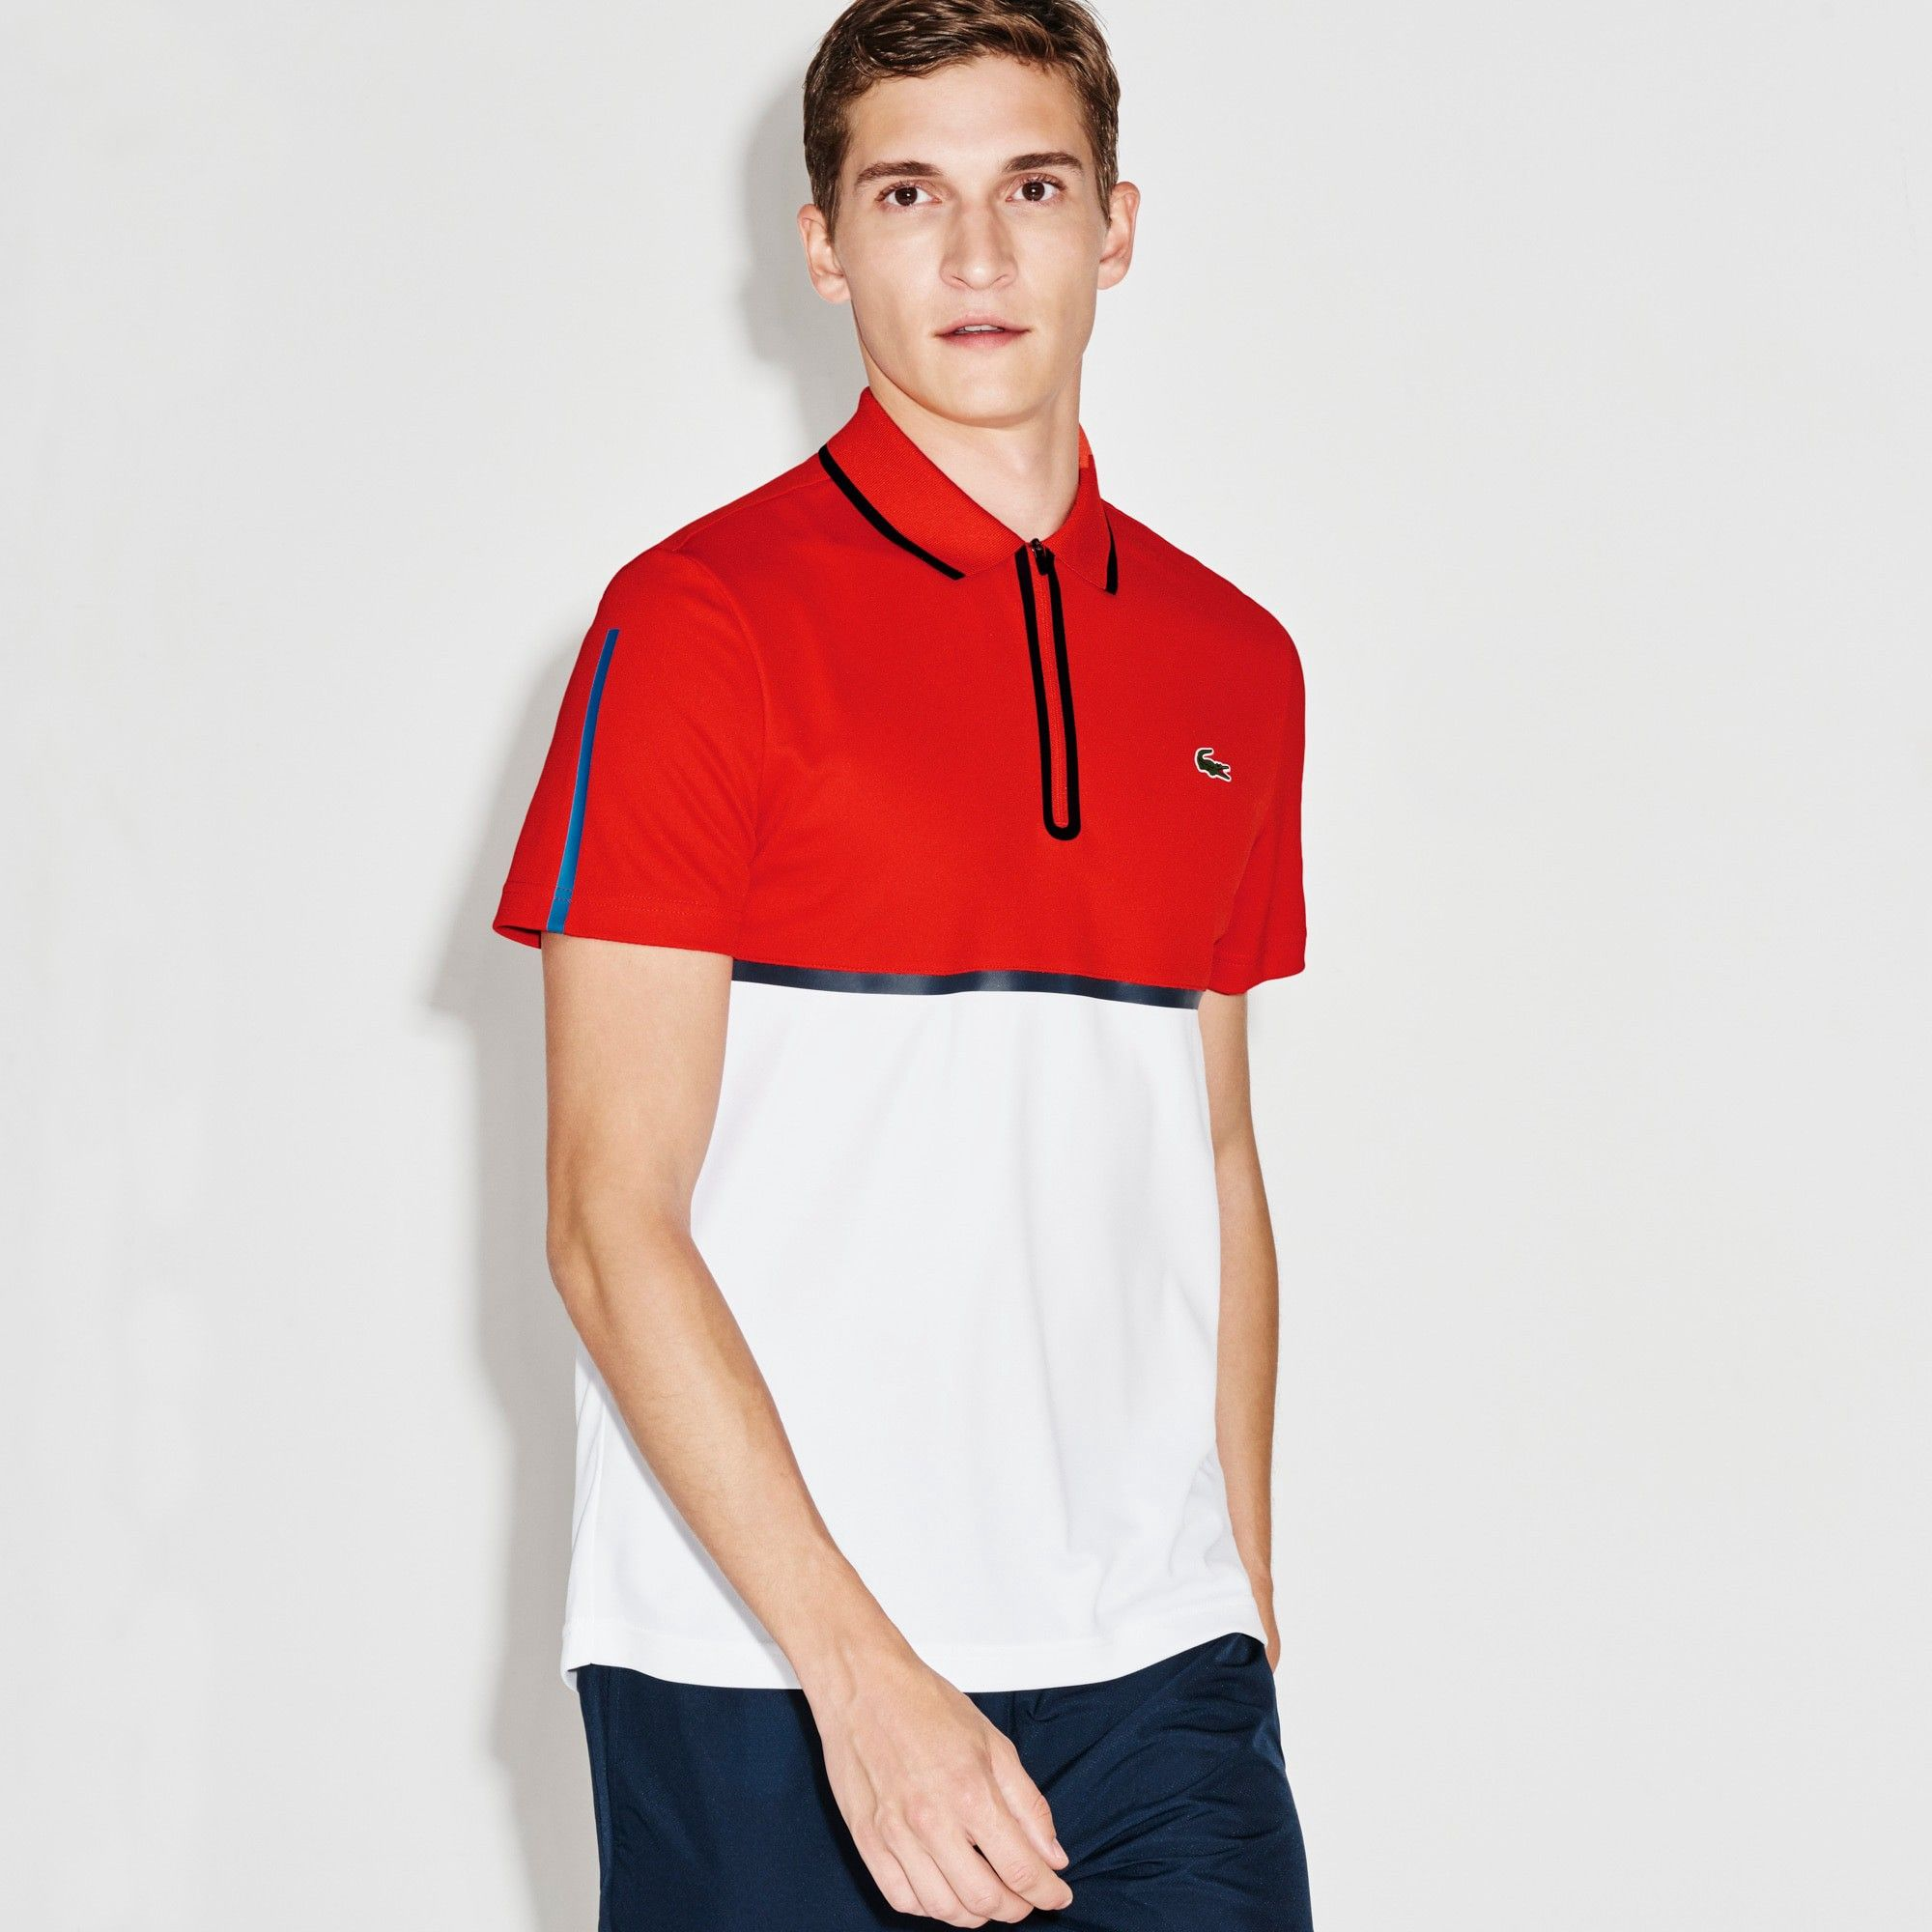 496041a7 LACOSTE Men's SPORT Ultra Dry Zip Pique Knit Tennis Polo Shirt - etna red/ white-navy blue-. #lacoste #cloth #